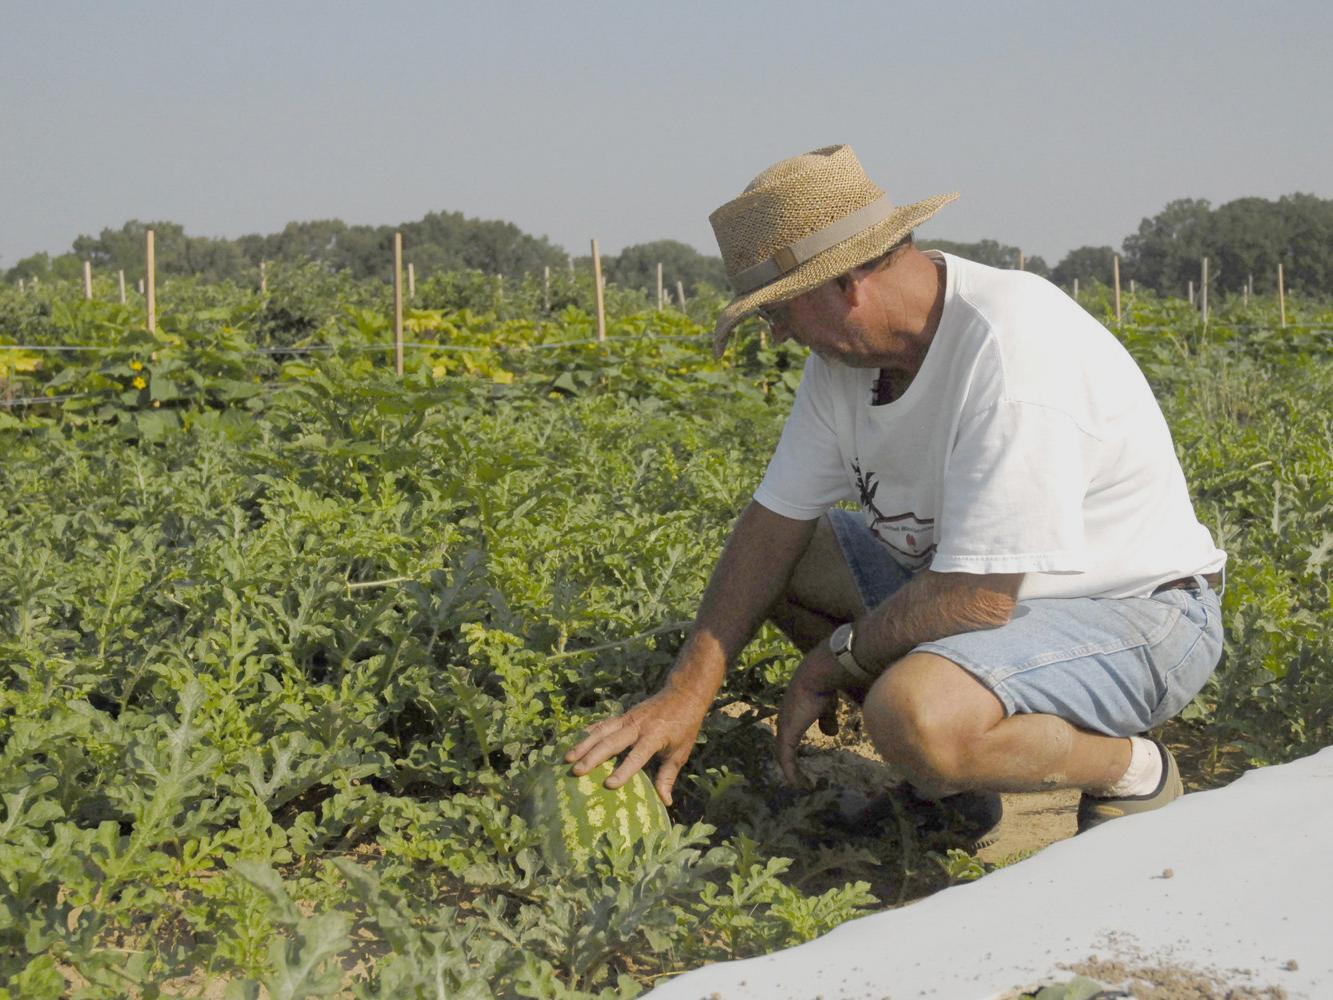 Chickasaw County farmer Doil Moore checks a young watermelon that will be ready before Fourth of July celebrations. (Photo by Linda Breazeale)